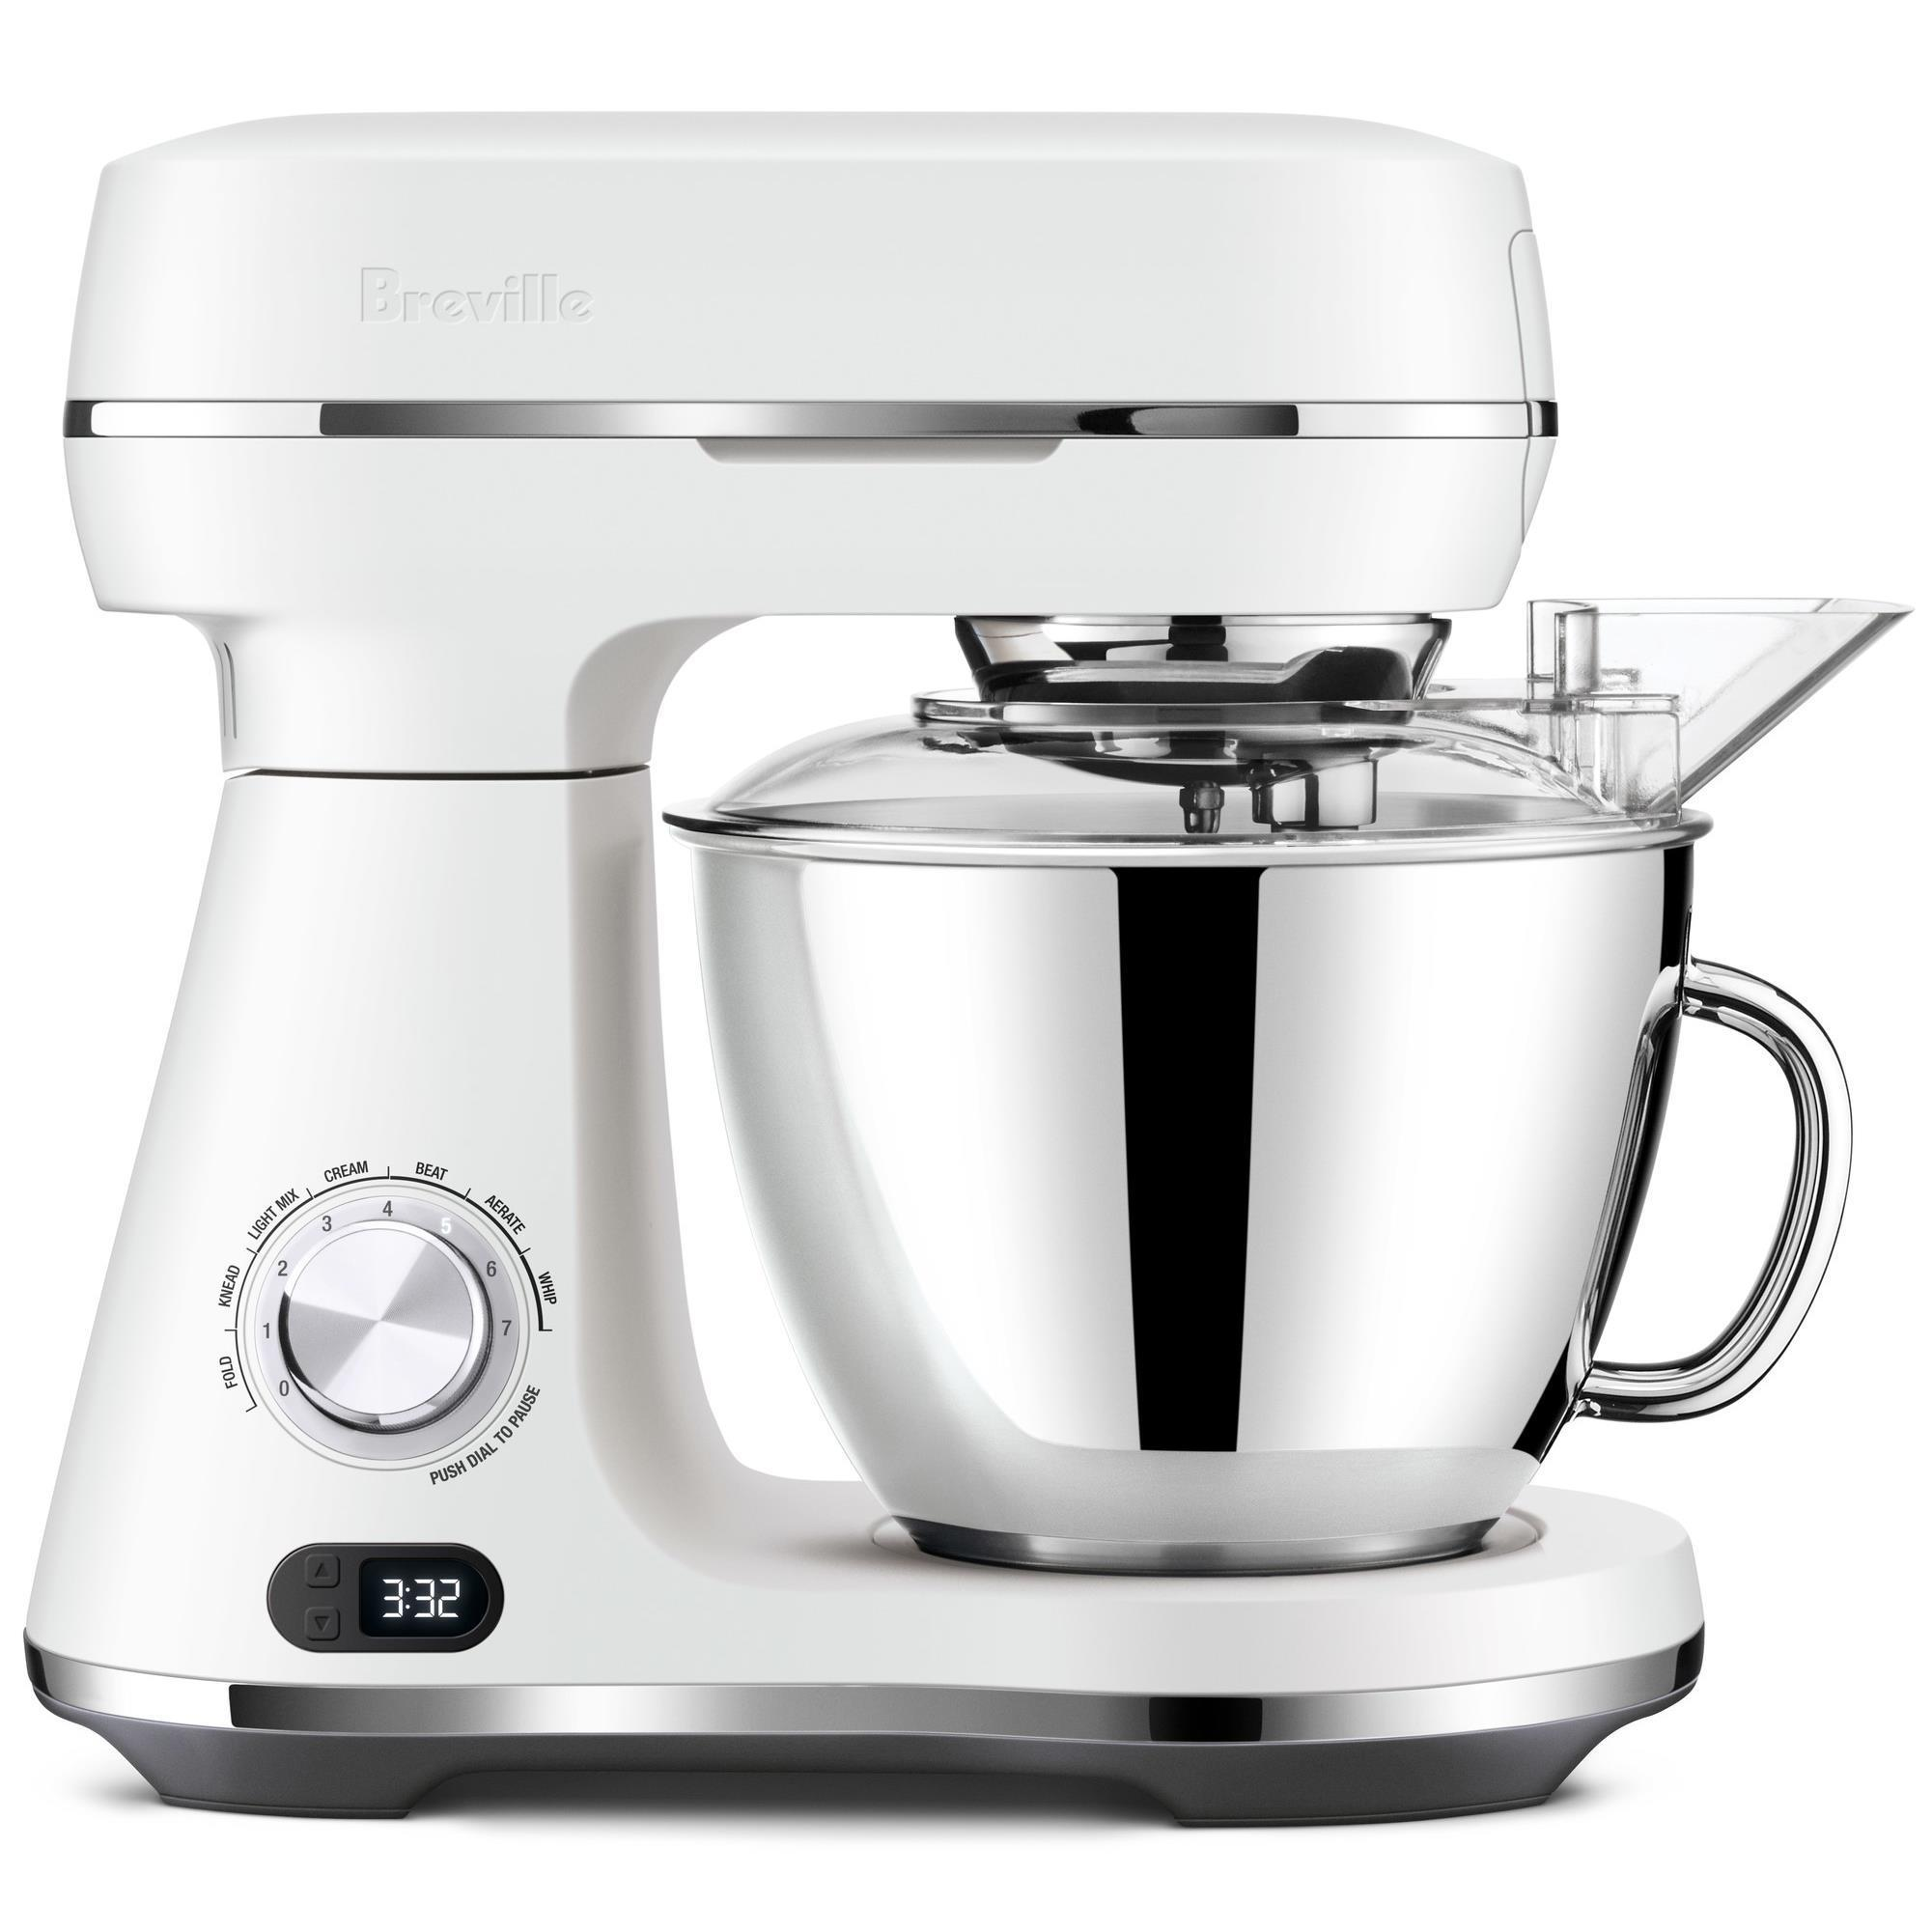 Breville the Bakery Chef Hub Food Mixer